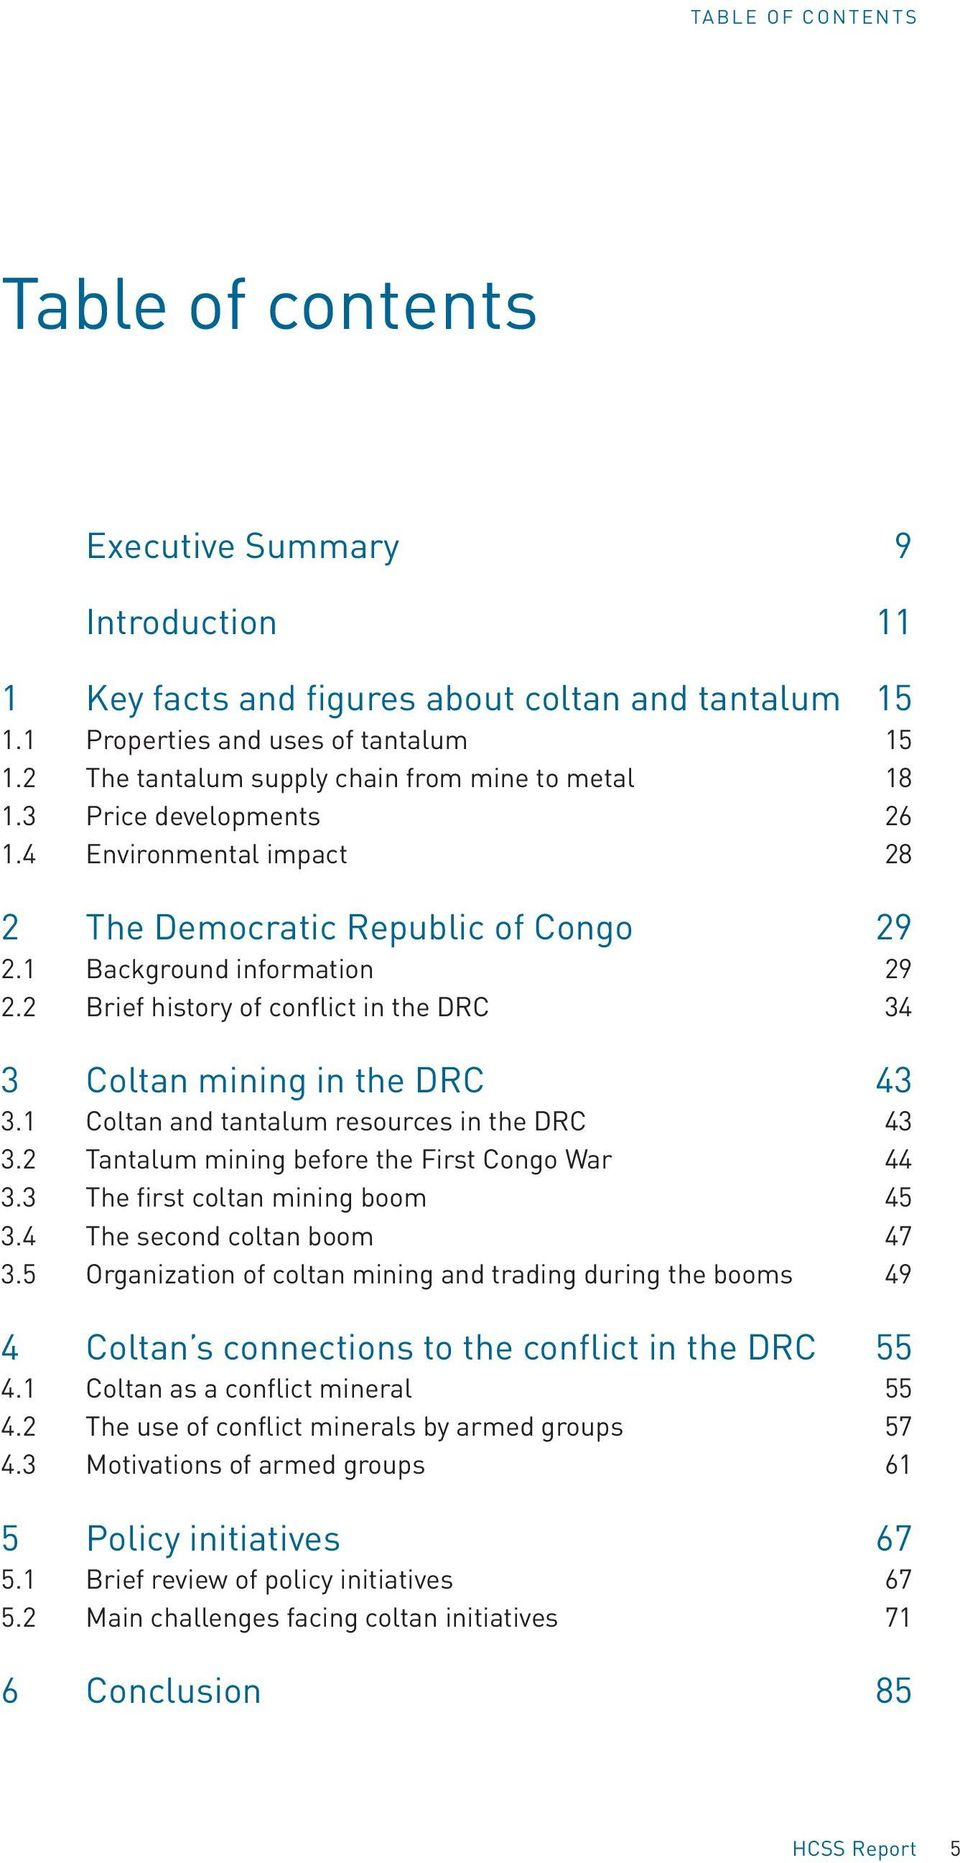 2 Brief history of conflict in the DRC 34 3 Coltan mining in the DRC 43 3.1 Coltan and tantalum resources in the DRC 43 3.2 Tantalum mining before the First Congo War 44 3.